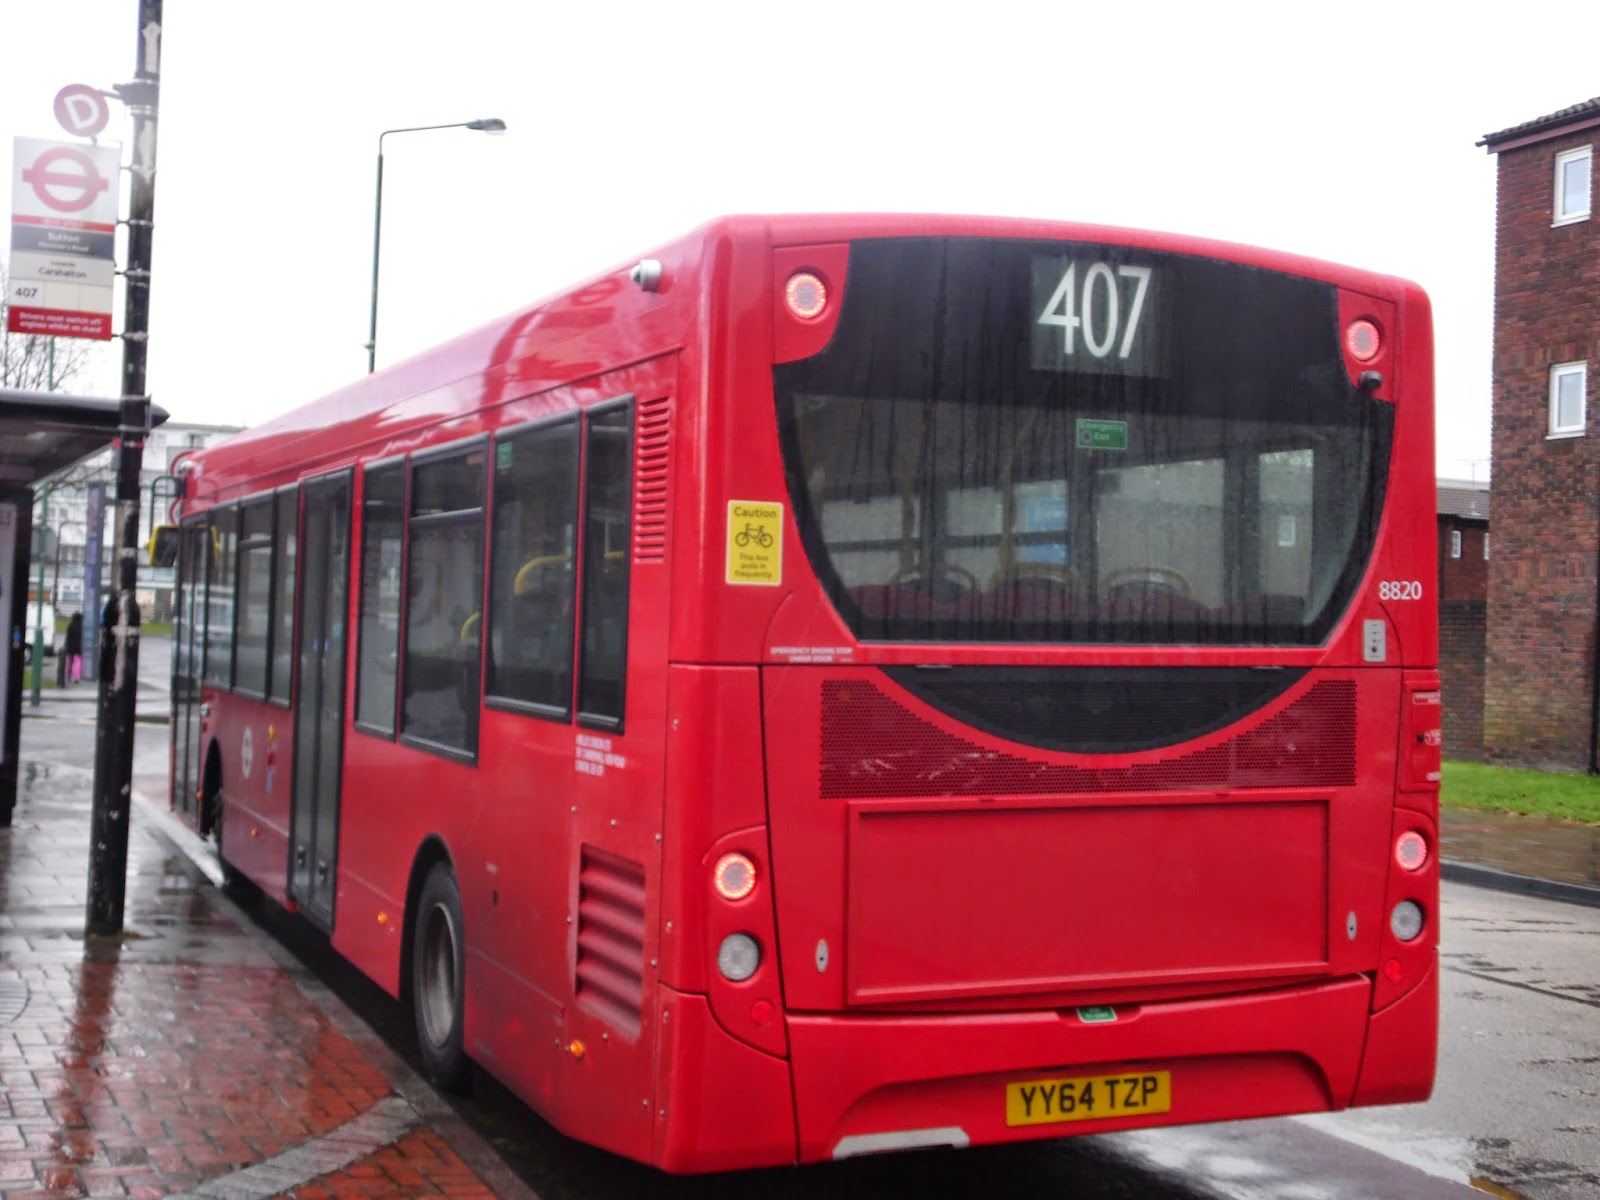 tom london & surrey bus blog: route 407 observations